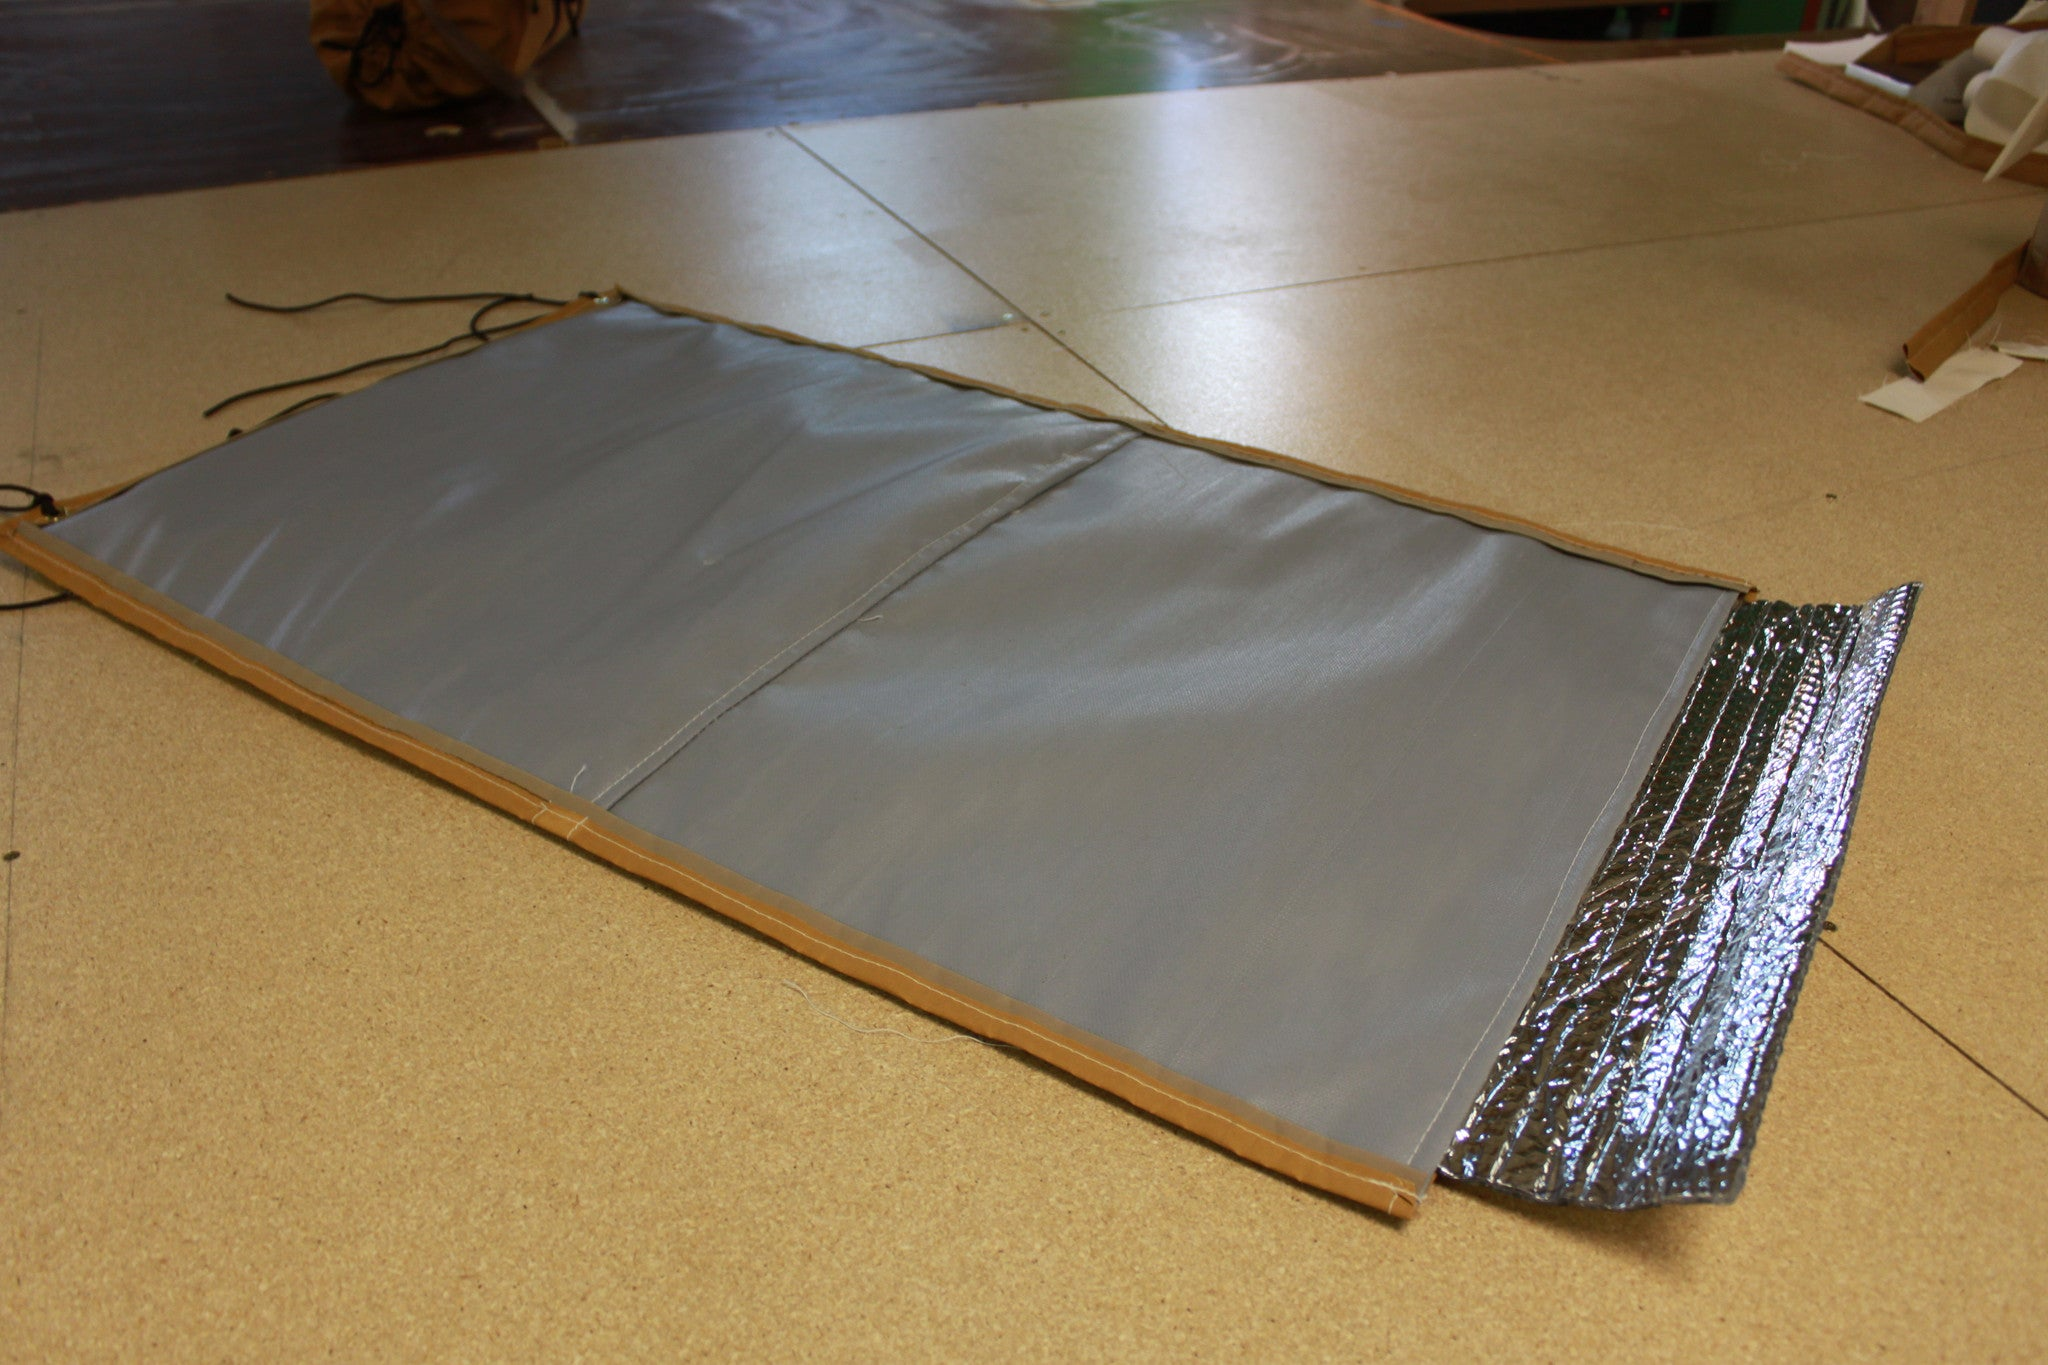 roundup duty fire mats things watch product resistant all barbecue by fireproof grill heavy mat